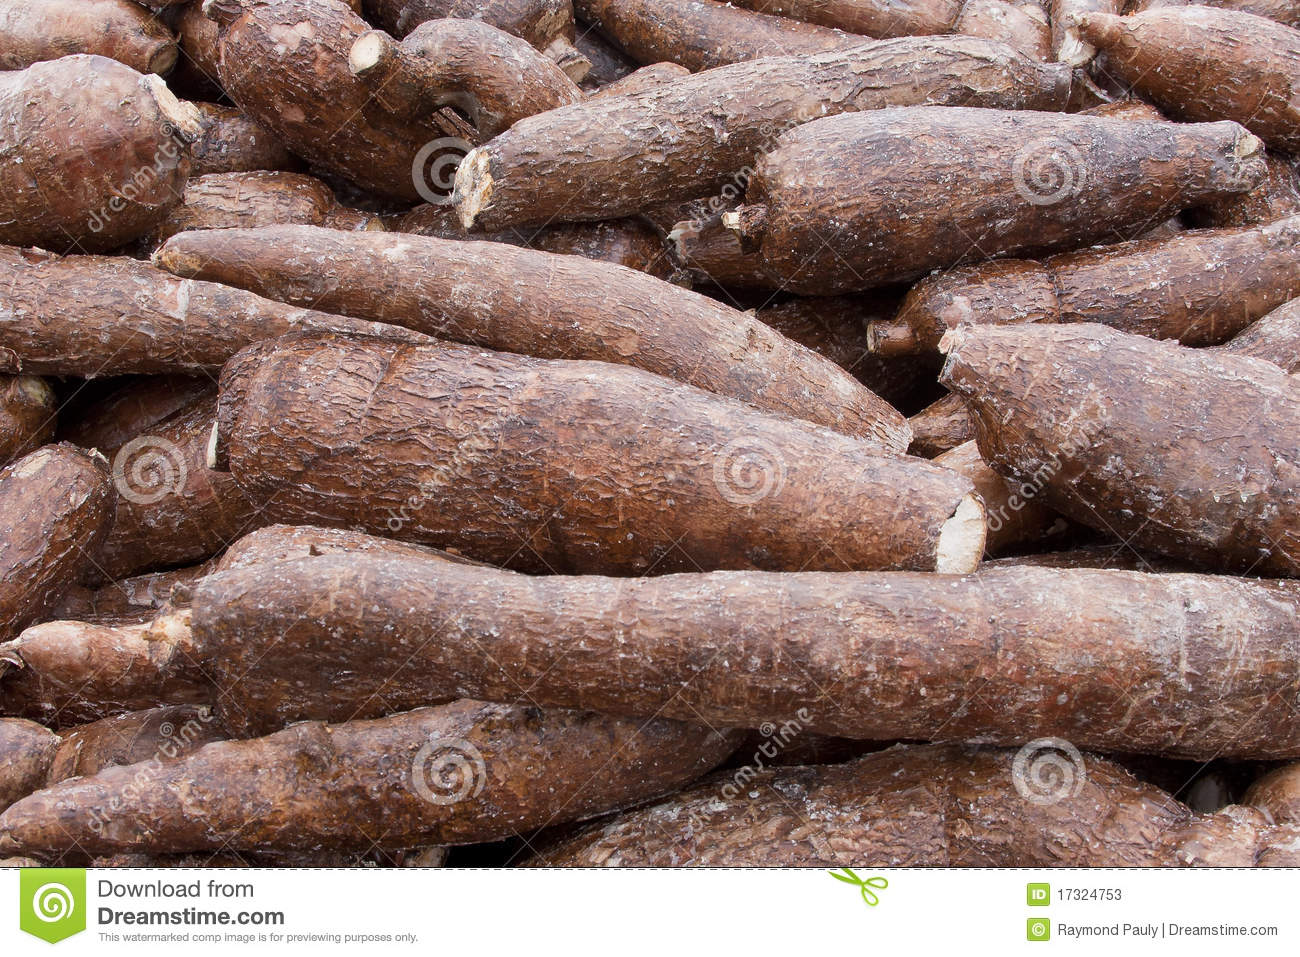 Full frame shot of a pile of Cassava root, also known as Yucca.